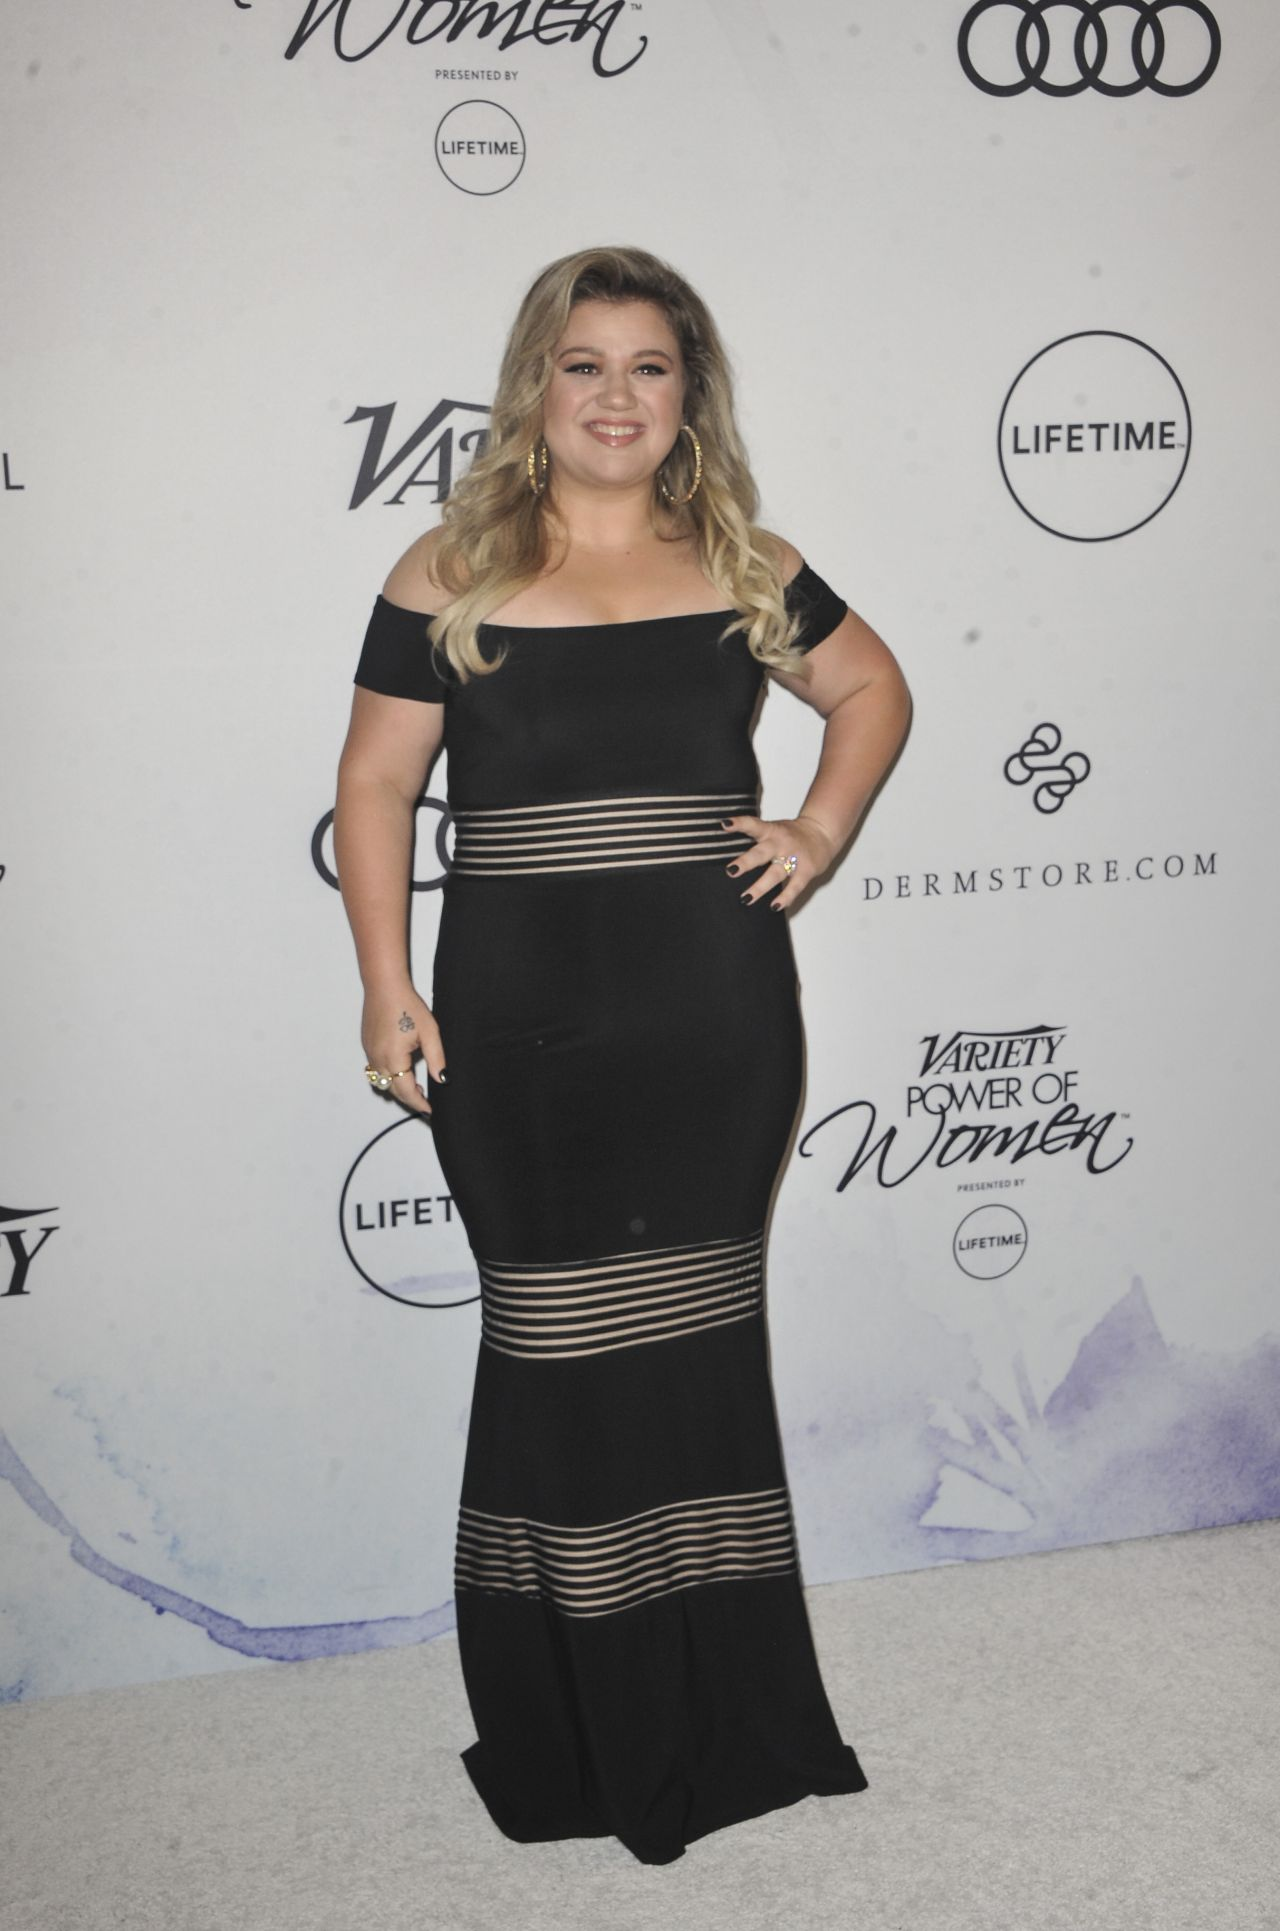 Kelly Clarkson – Variety's Power of Women in Los Angeles